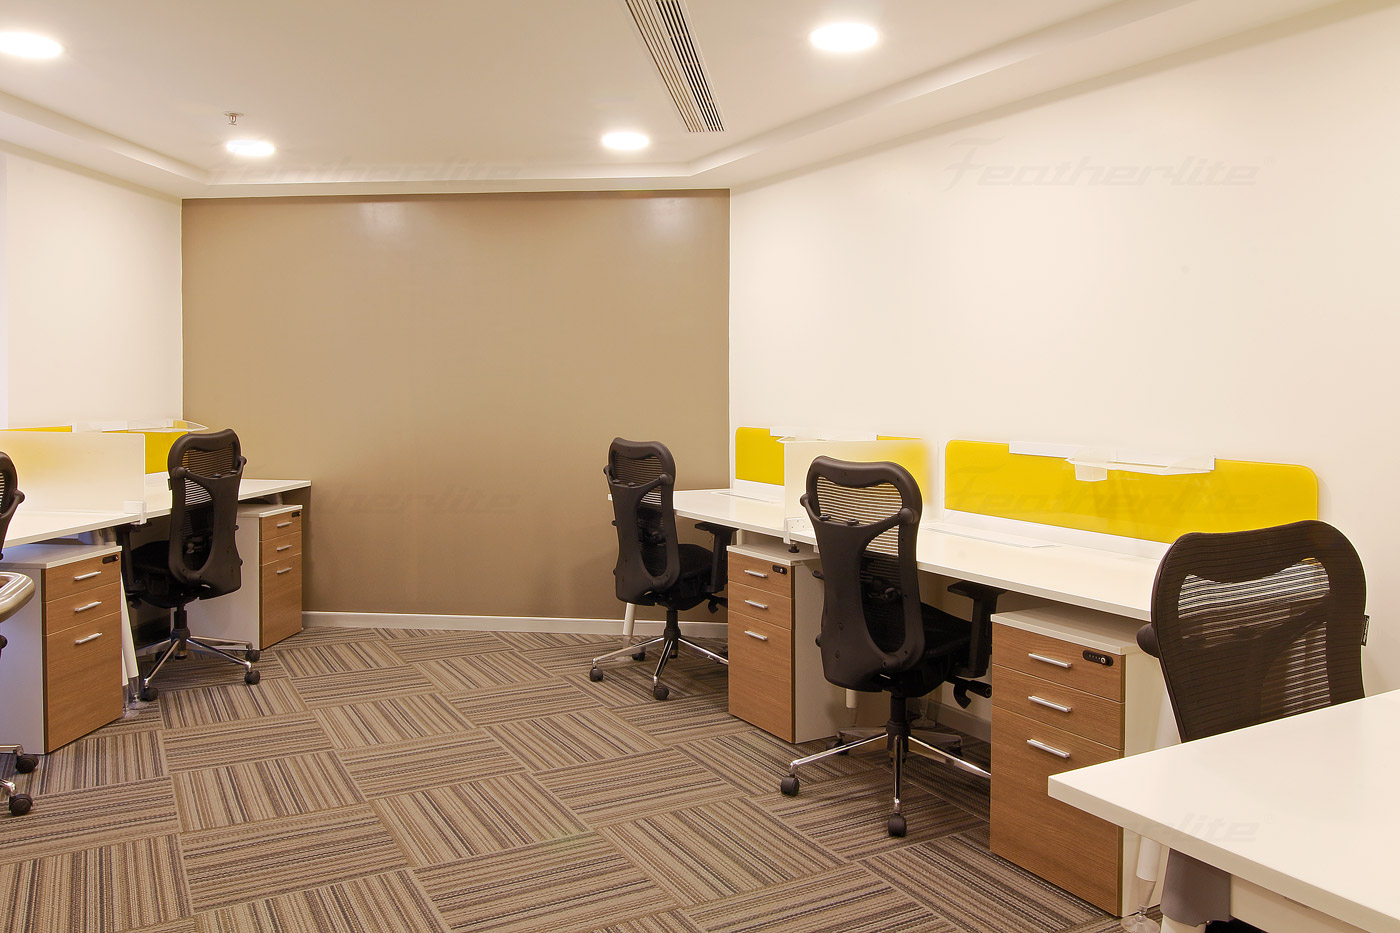 Office Space For Rent In Bangalore Evoma Bangalore India